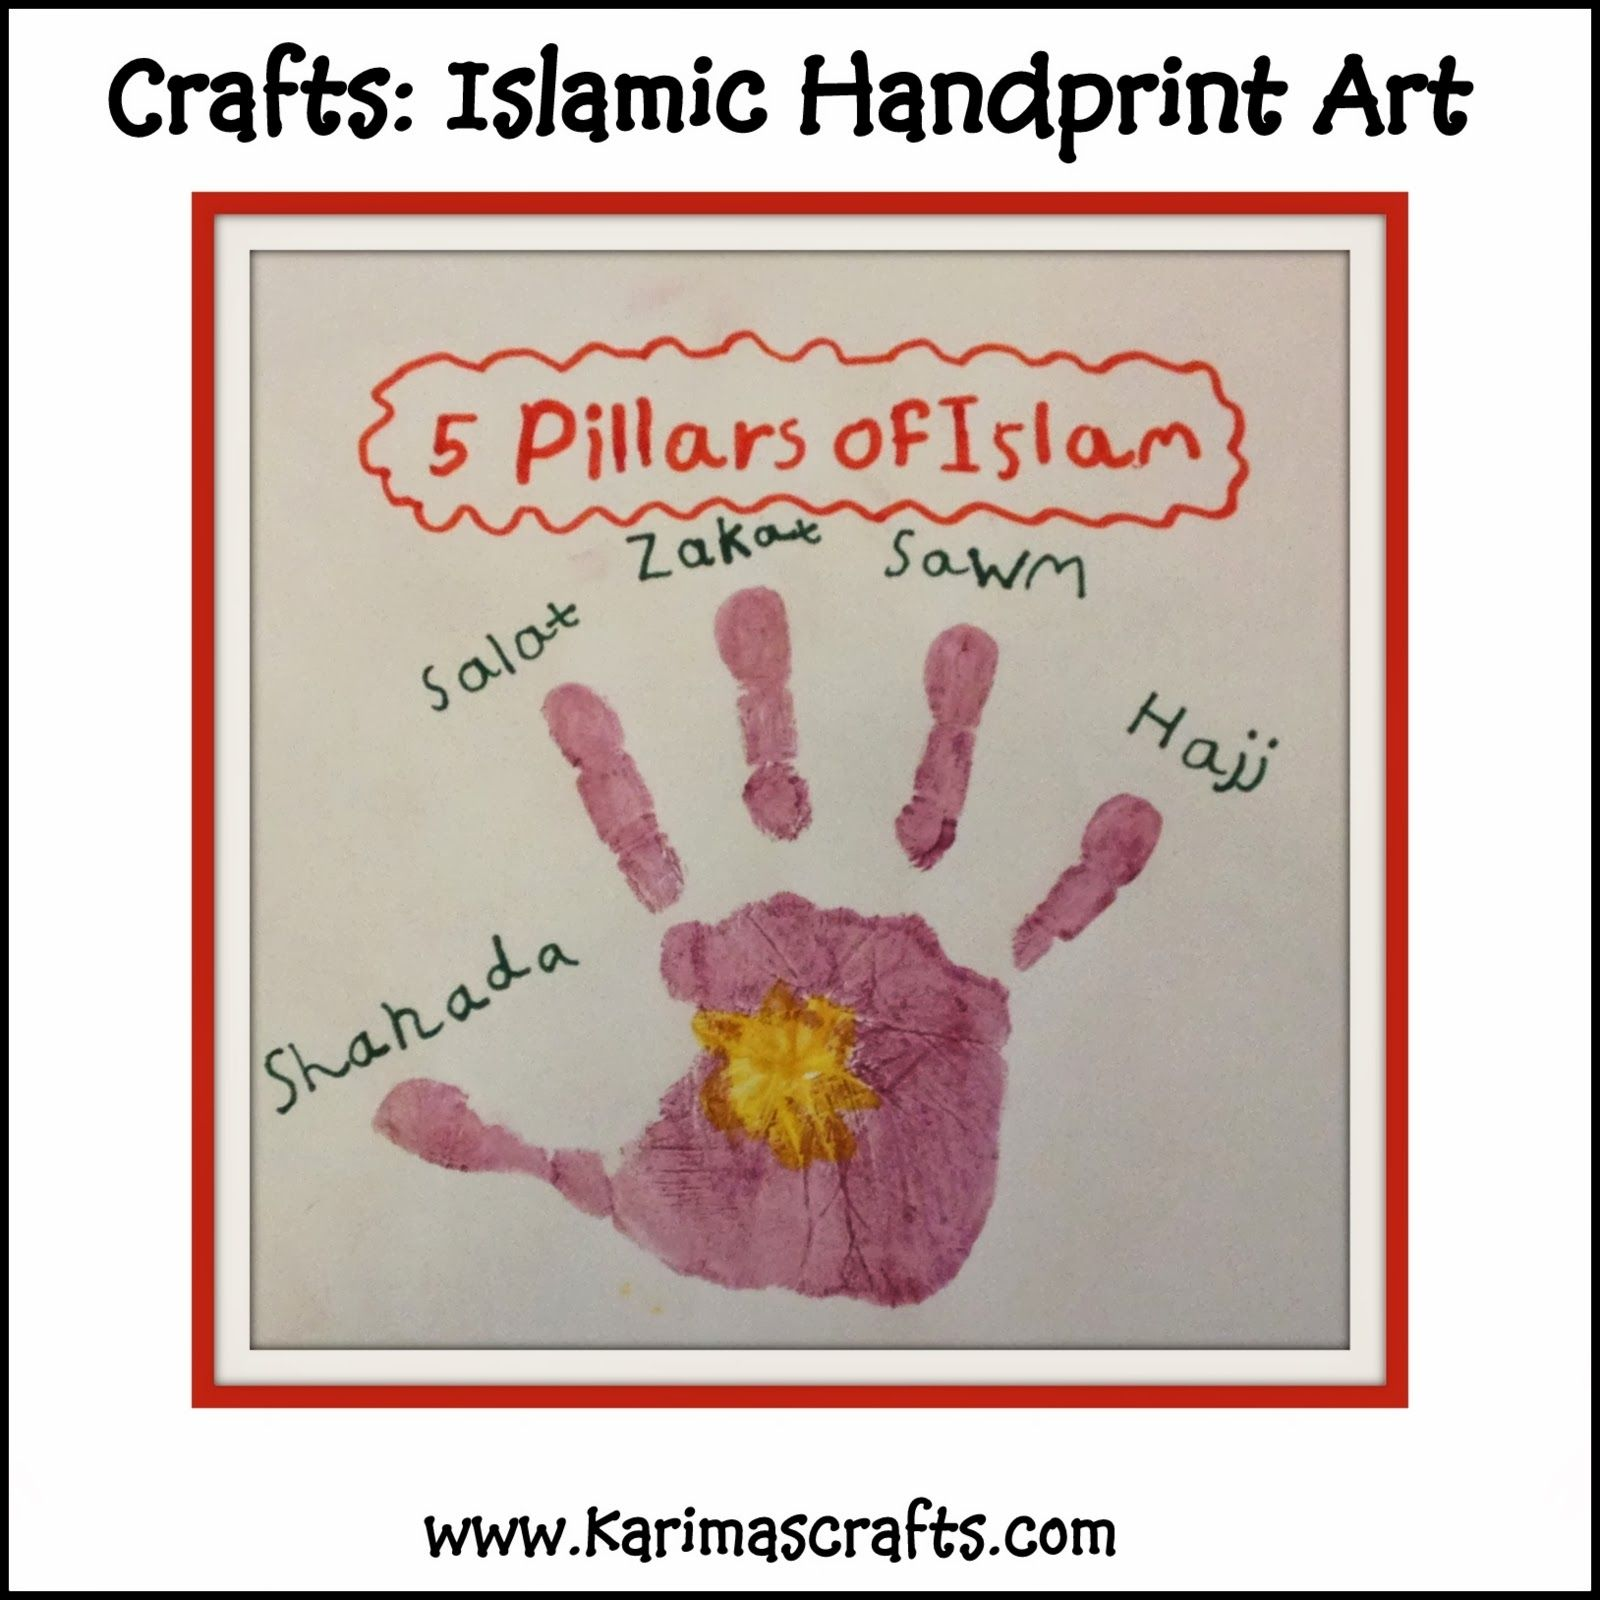 worksheet Five Pillars Of Islam Worksheet 1000 images about islamic education n crafts on pinterest notebooks good deeds and prayer times